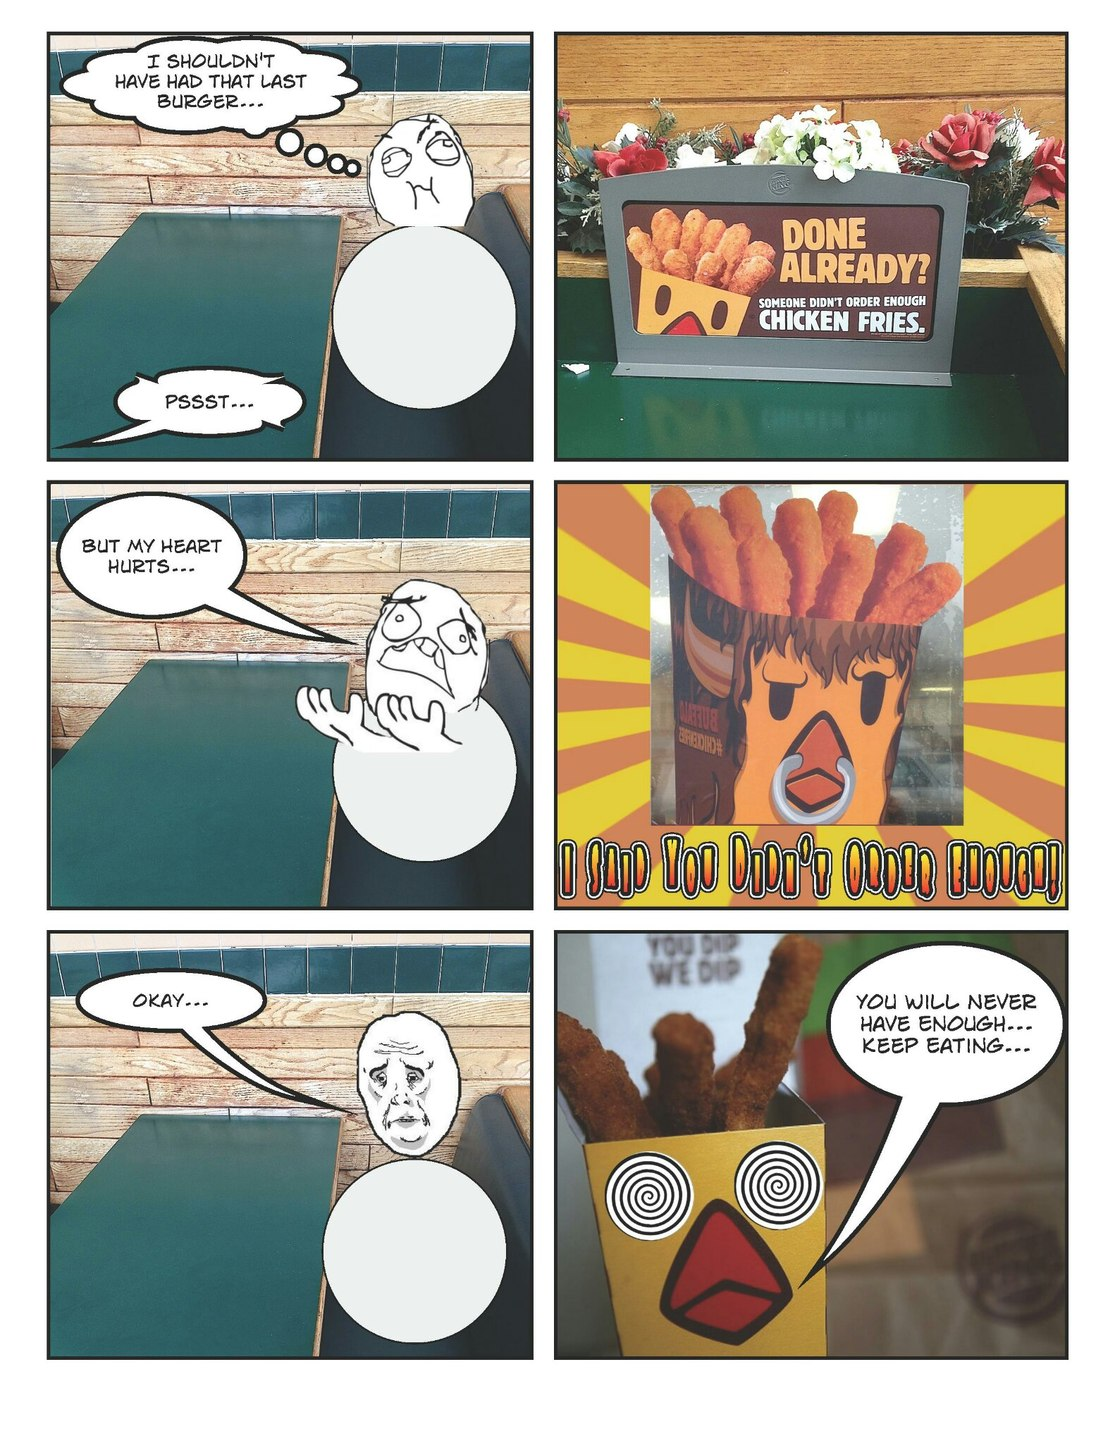 Submit to the chicken fries. You can't resist the tasty overlord - meme